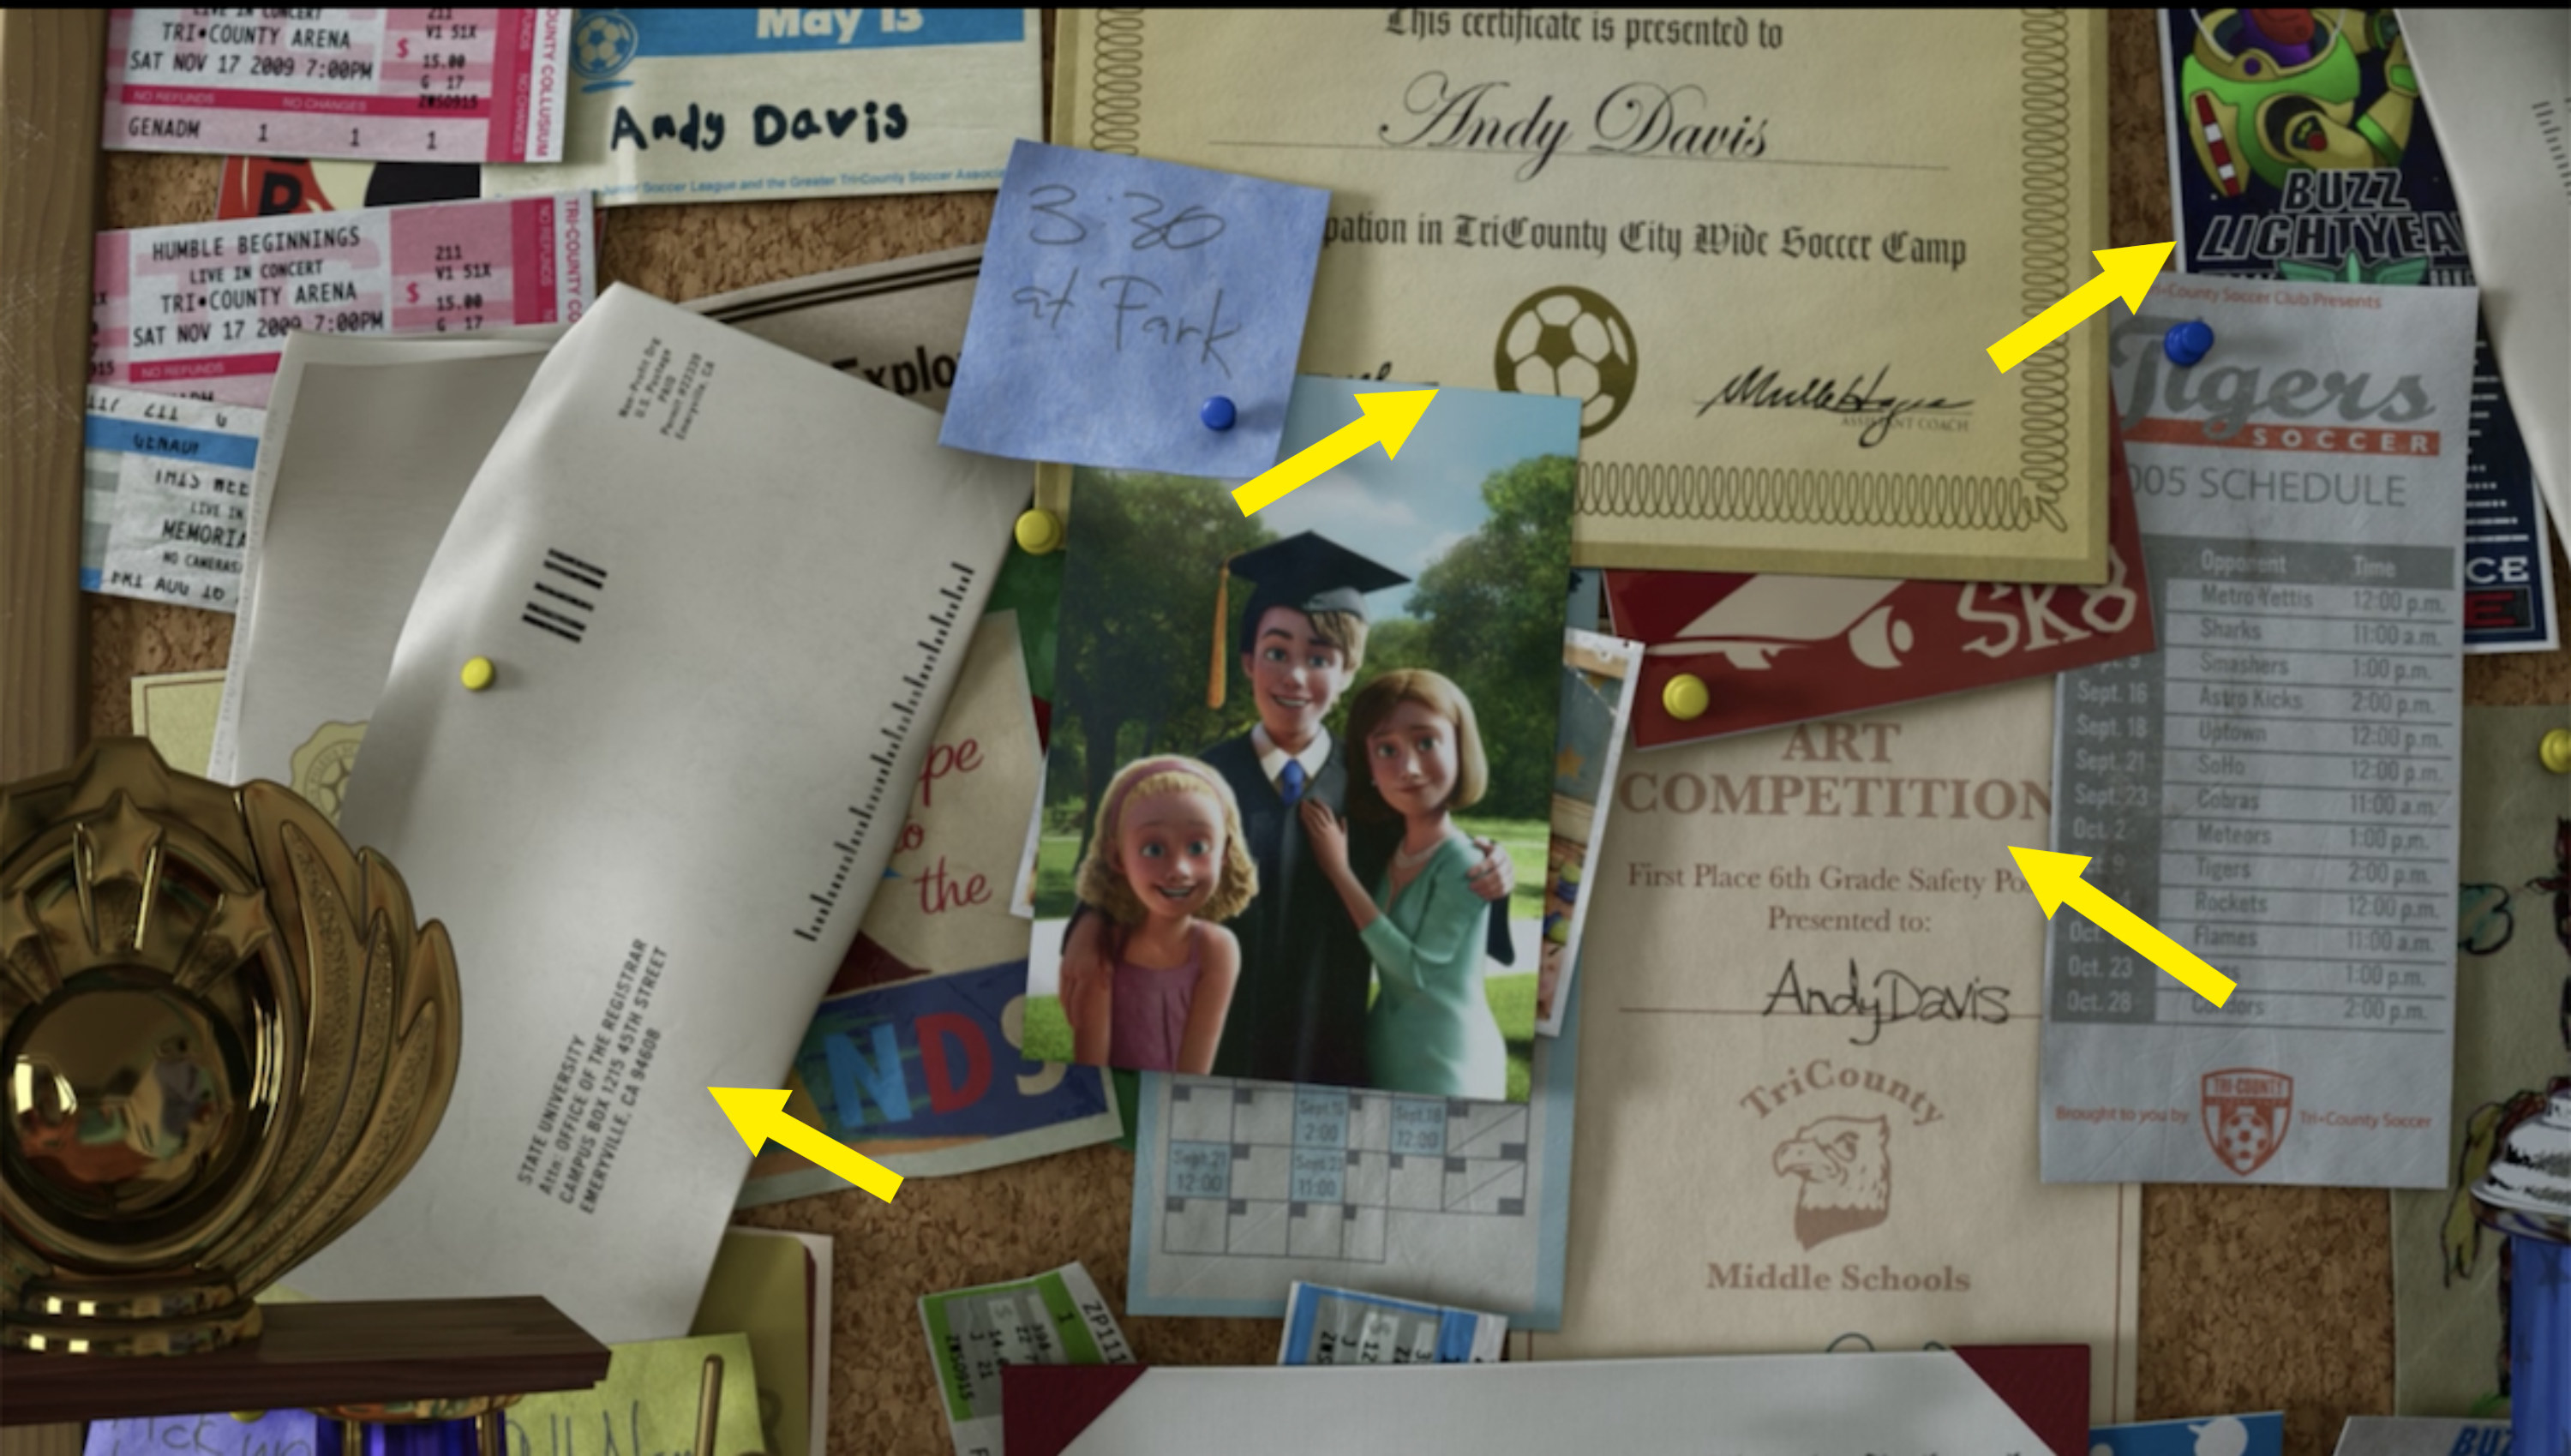 Andy's crowded bulletin board